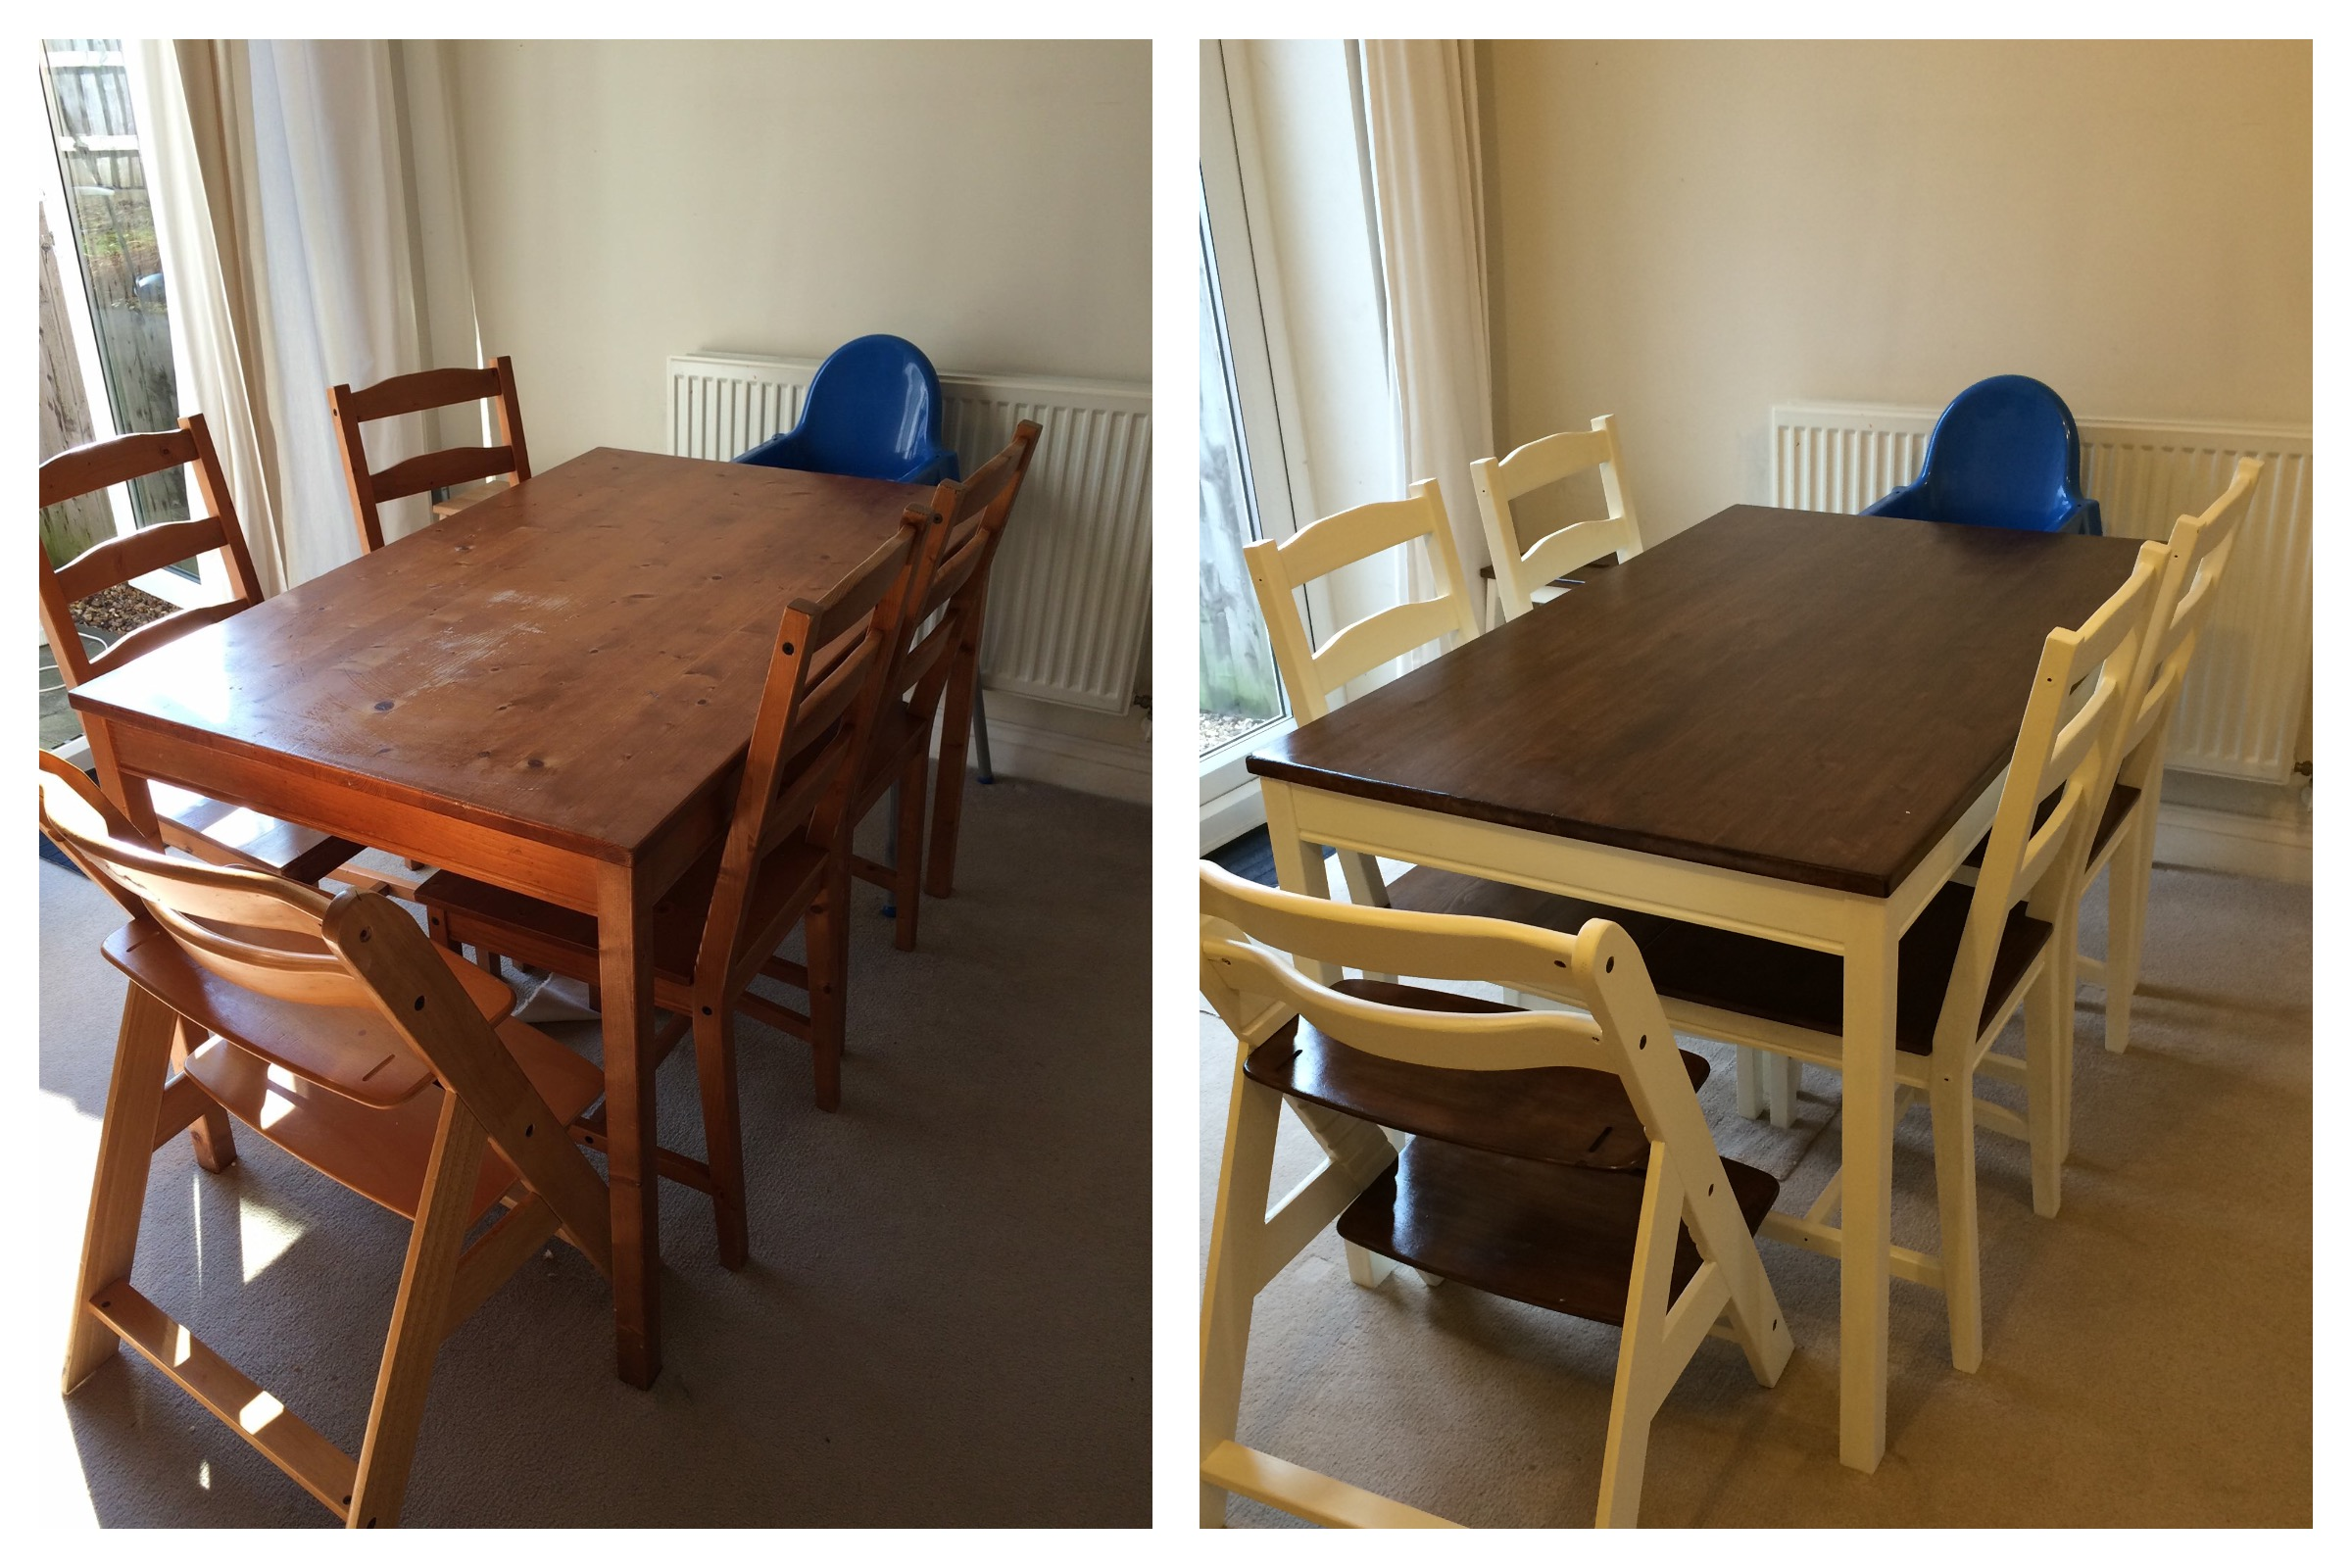 Cold Cuppa Club Before and After Upcycling an Ikea  : IMG2053 from coldcuppaclub.com size 2400 x 1600 jpeg 563kB